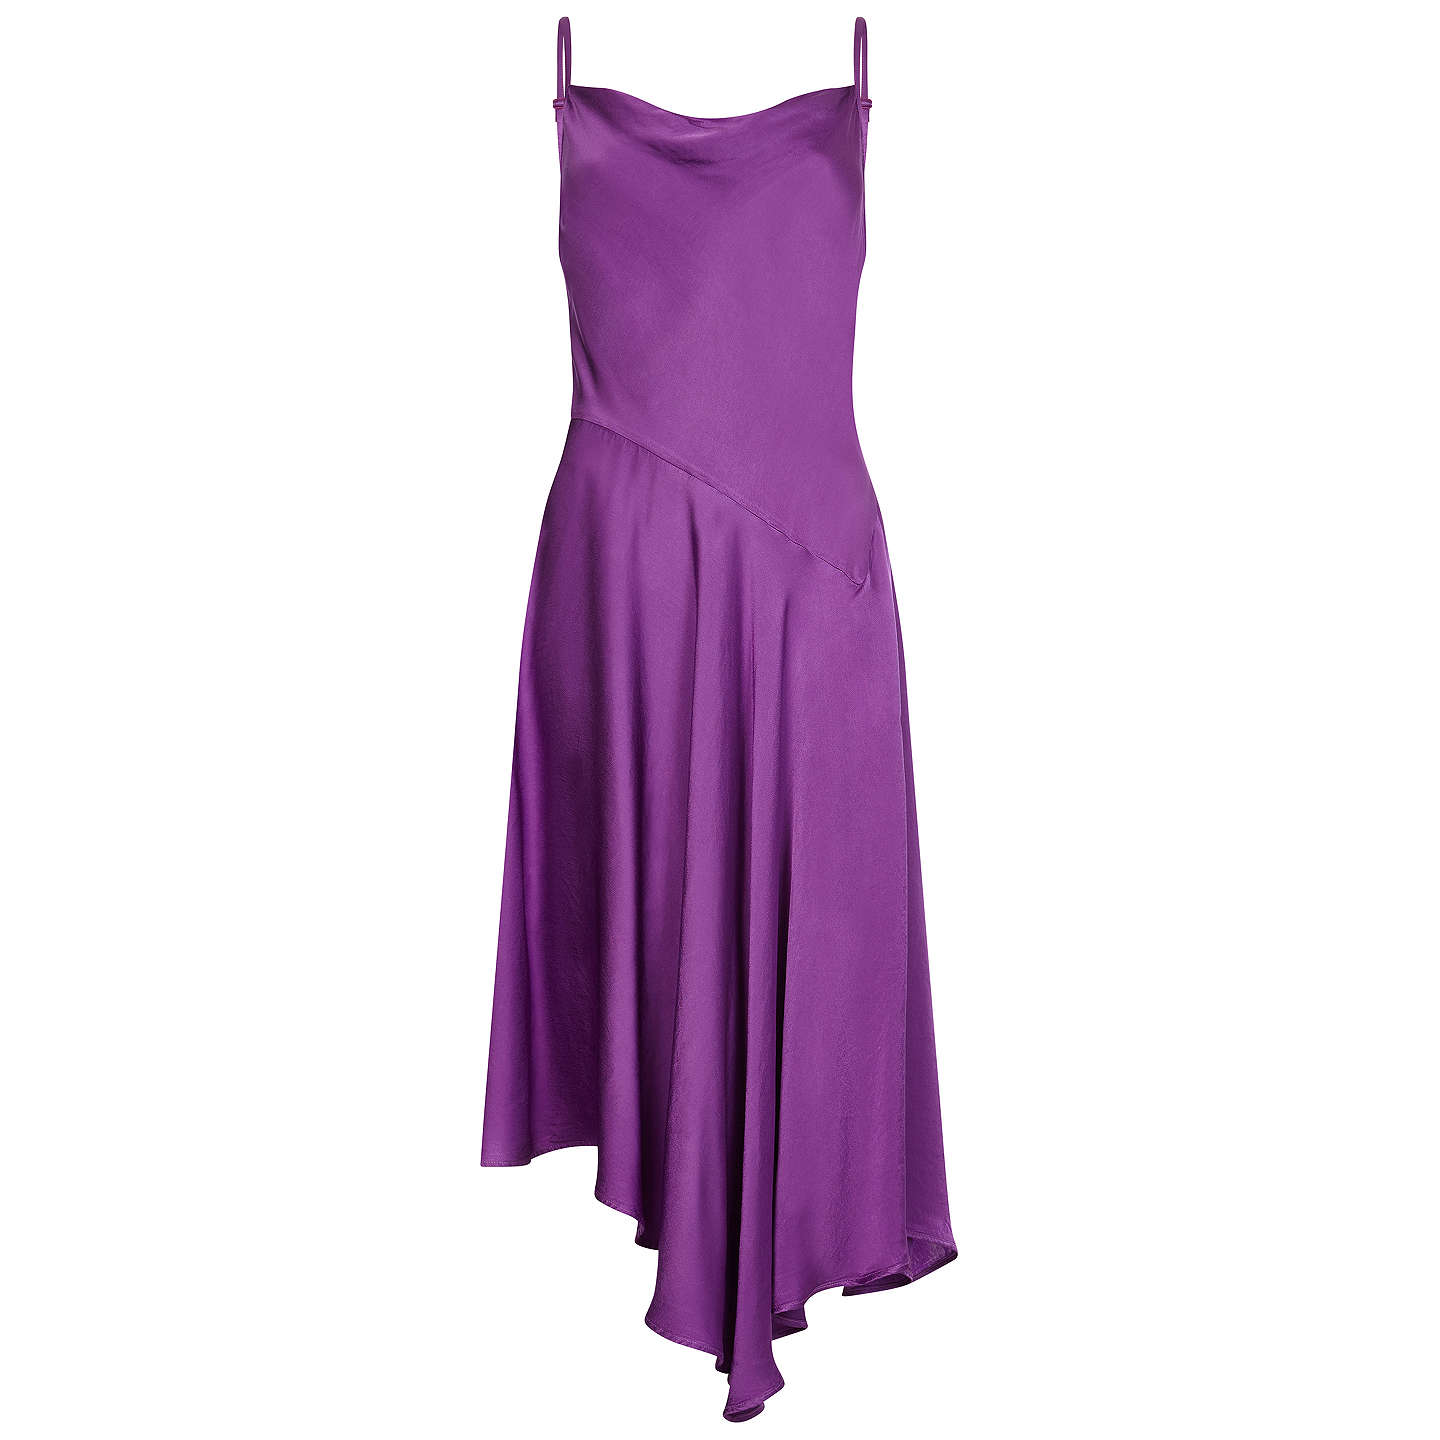 BuyGhost Alice Dress, Purple, XS Online at johnlewis.com